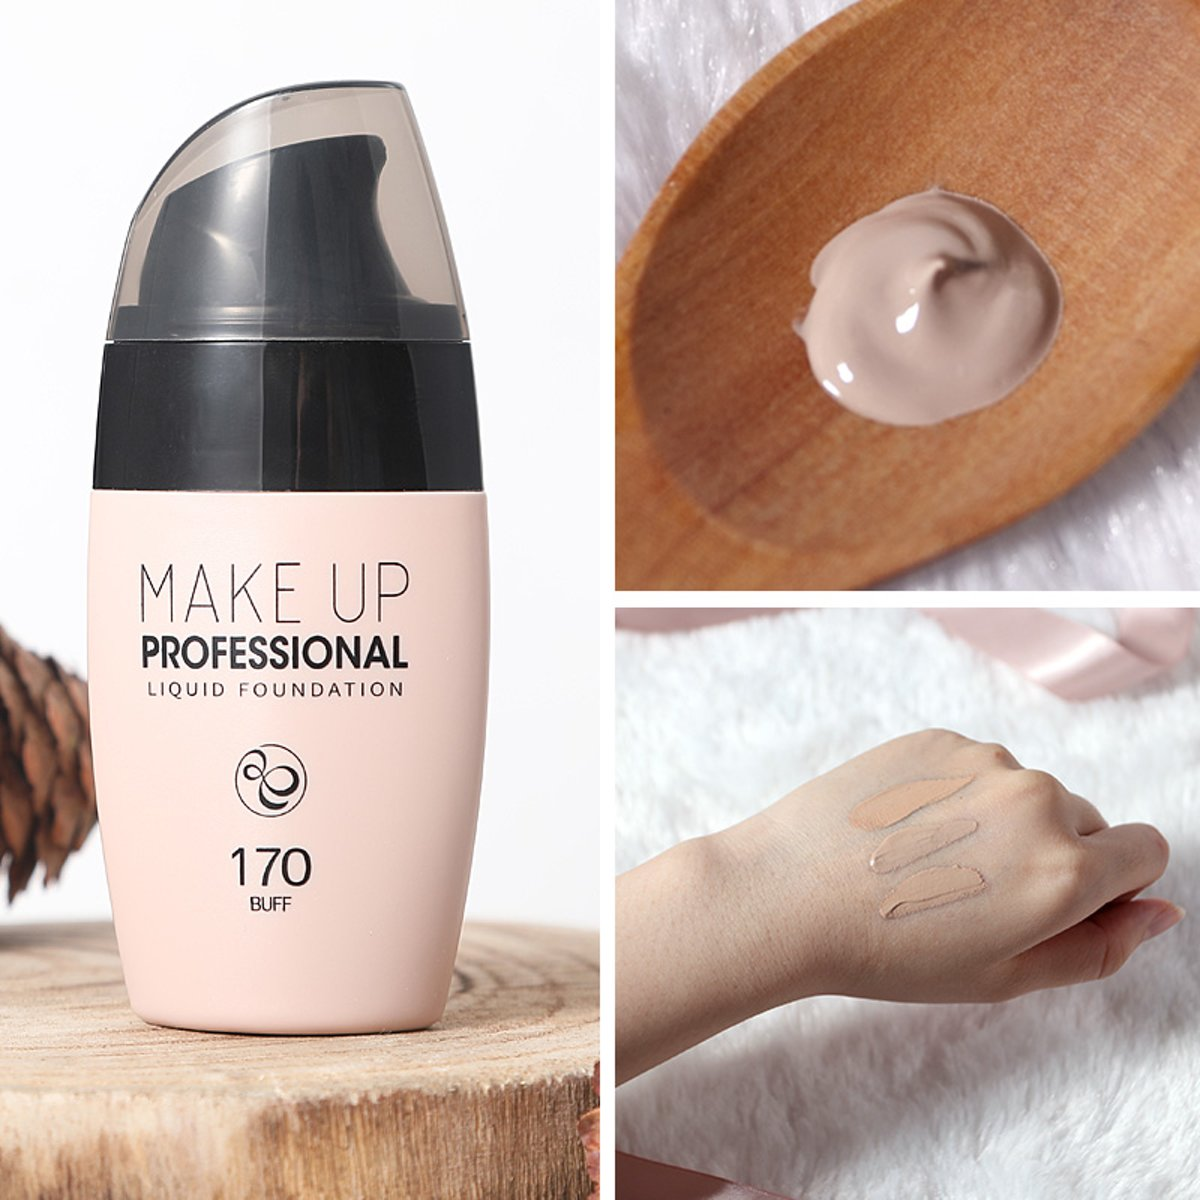 170 BUFF - LAIKOU moisturizing foundation makeup base lasting concealer liquid